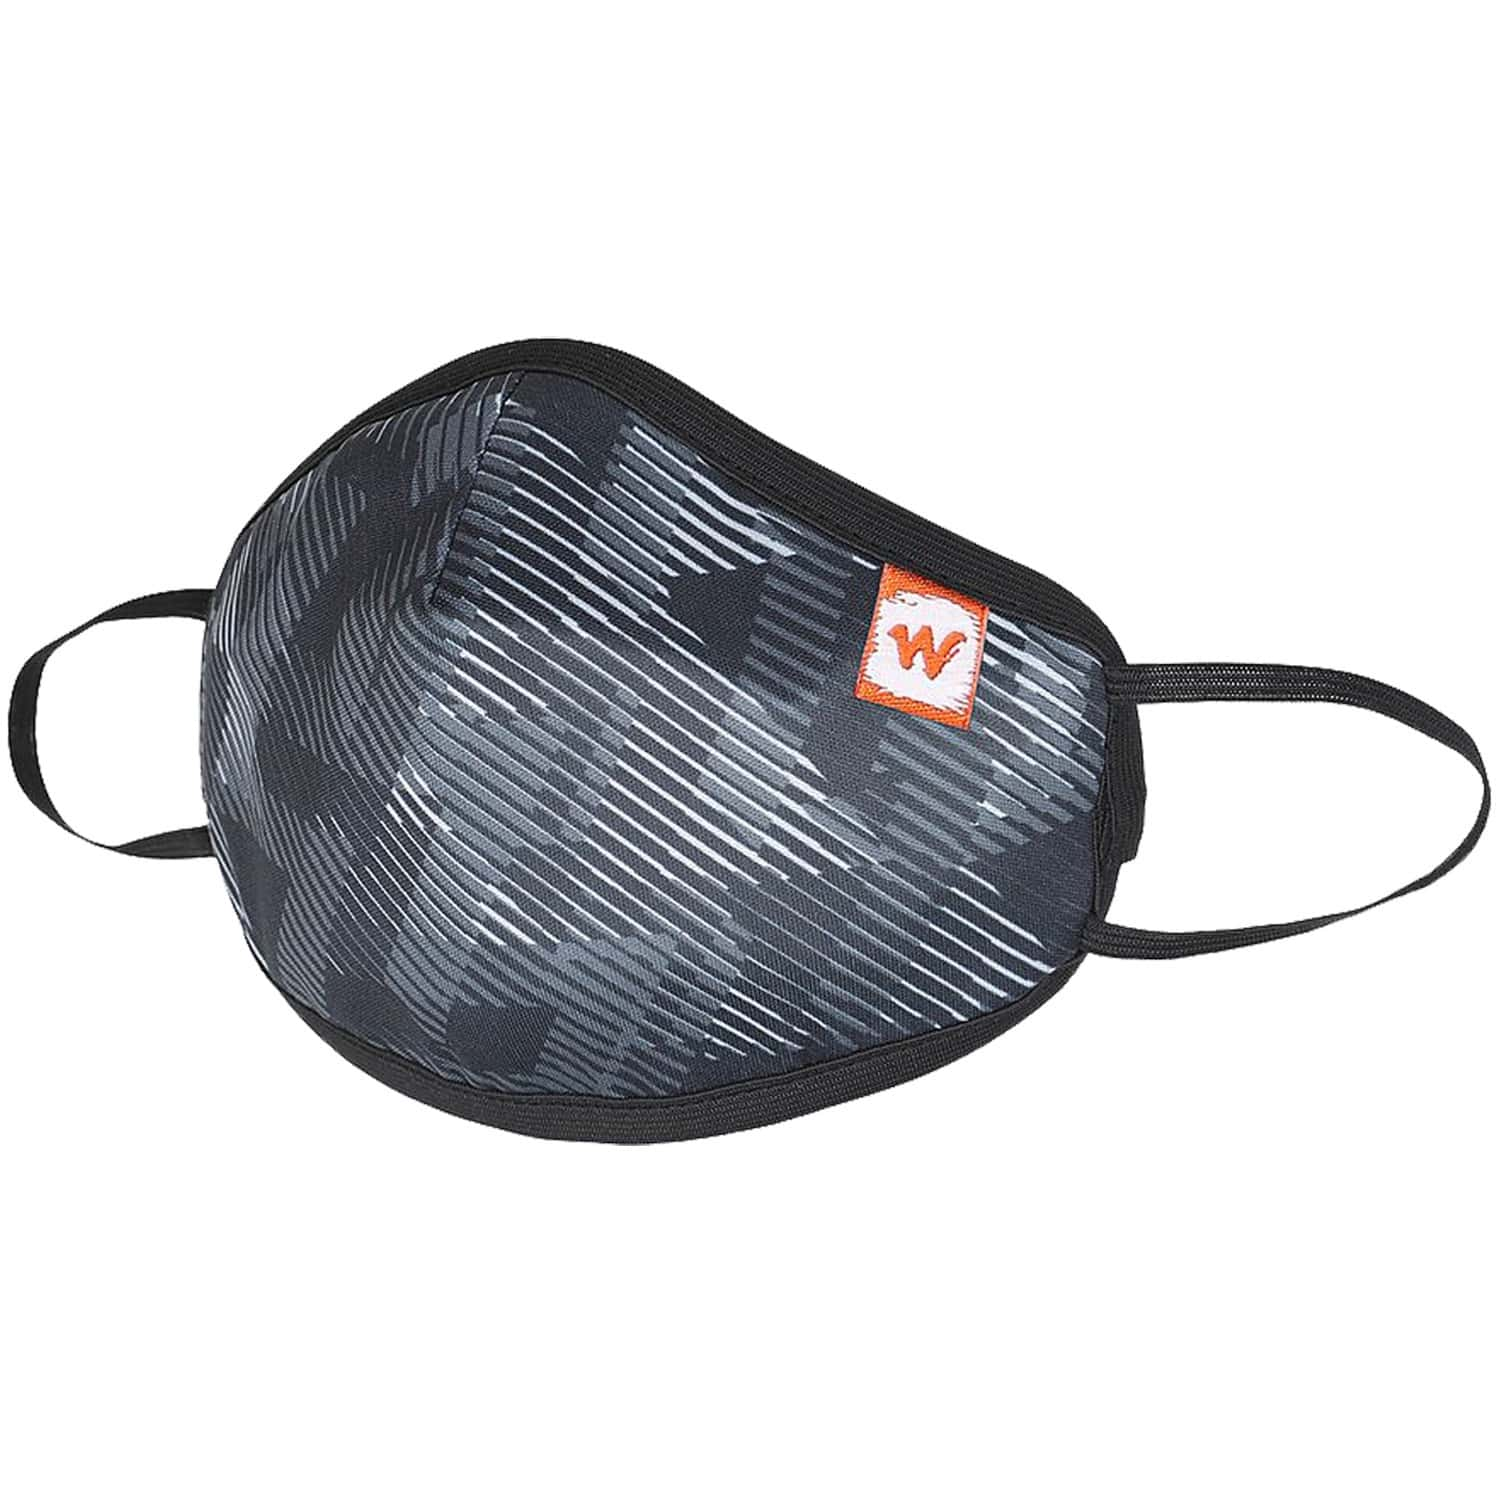 Wildcraft Supermask W95+ Reusable Outdoor Respirator Face Mask Anti-dust| Anti-bacterial | Anti-pollution- Size L